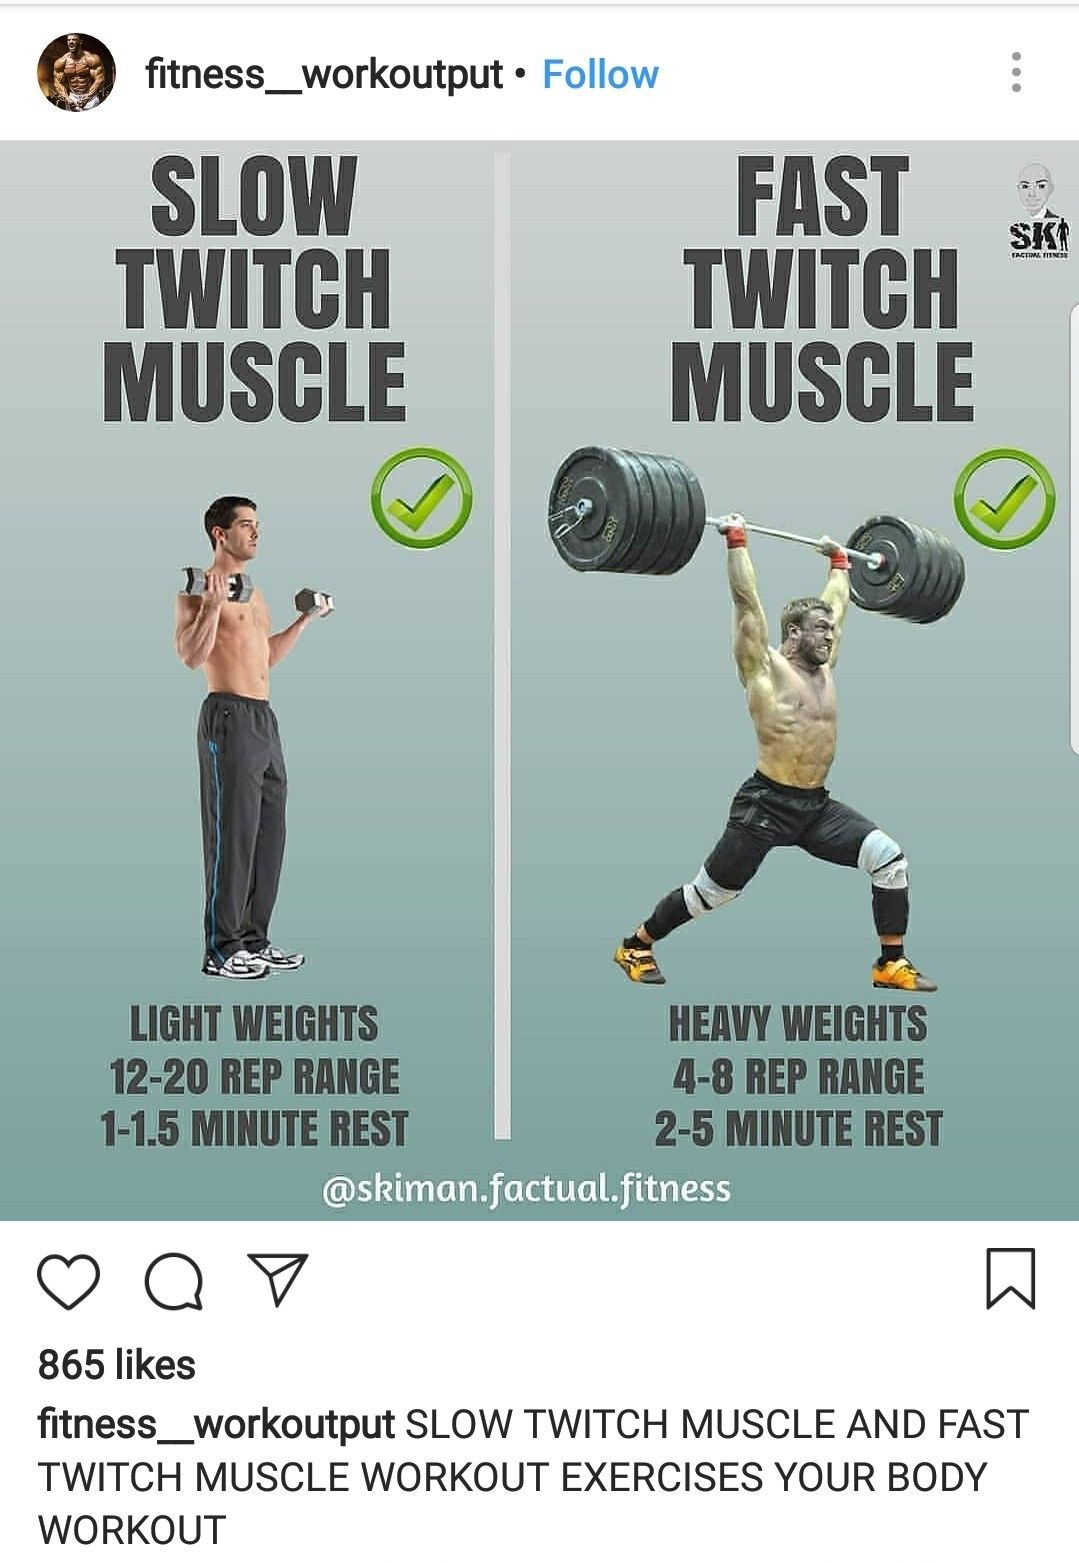 Slow Twitch Muscle Vs Fast Twitch Muscle